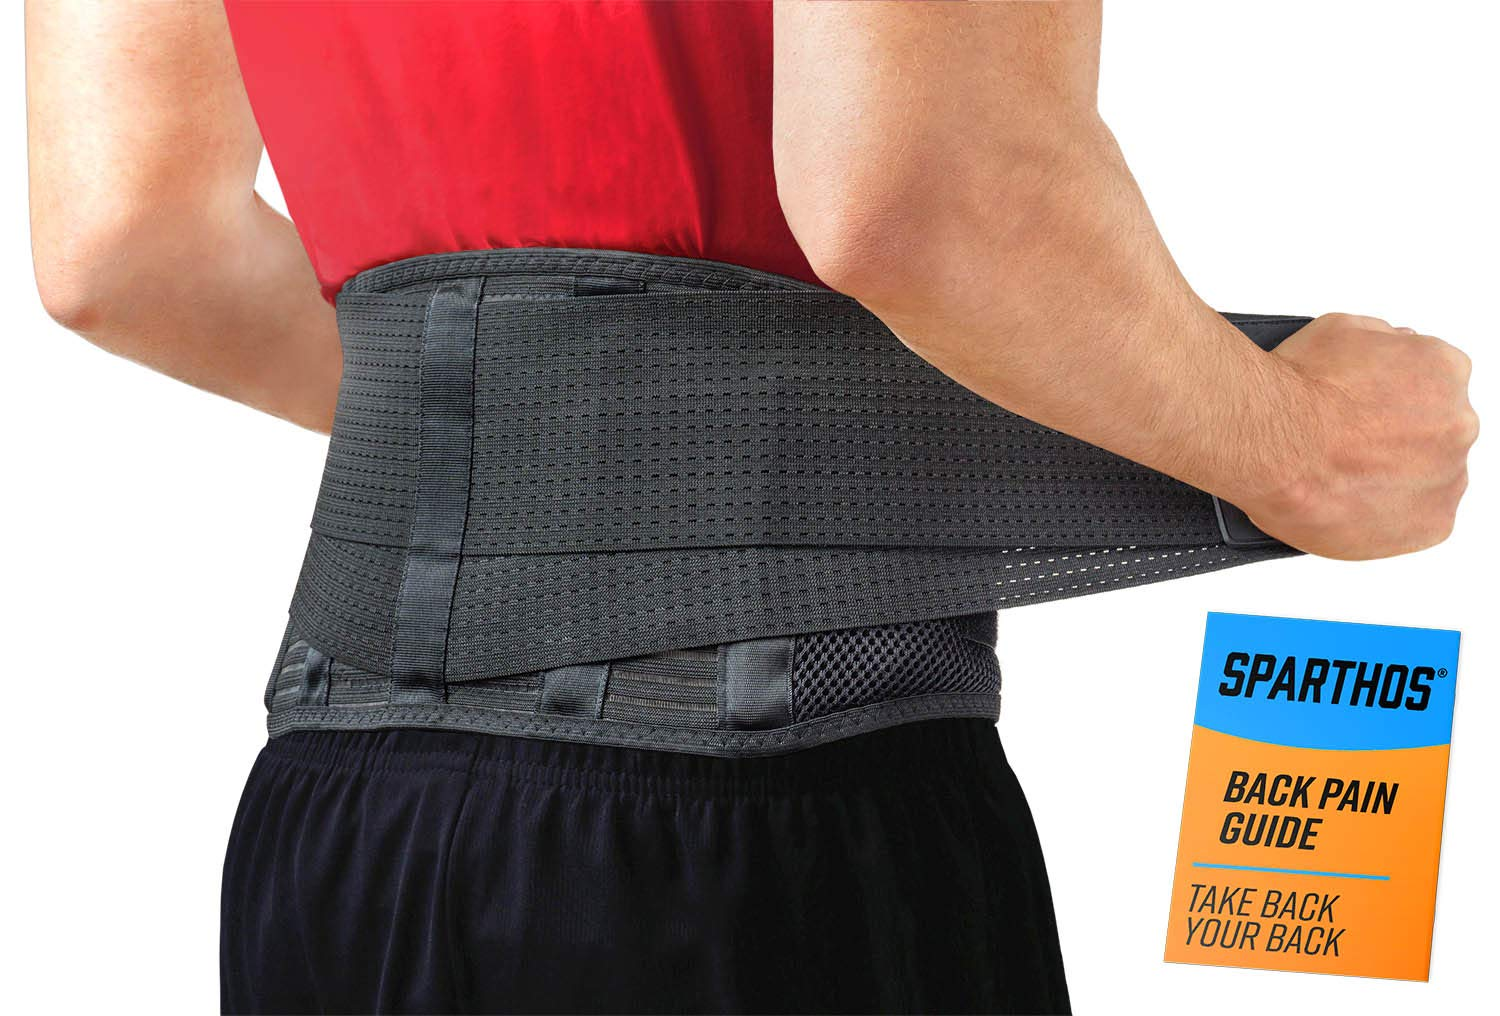 f6ce0f4b09f70 Amazon.com  Back Brace by Sparthos - Immediate Relief for Back Pain ...